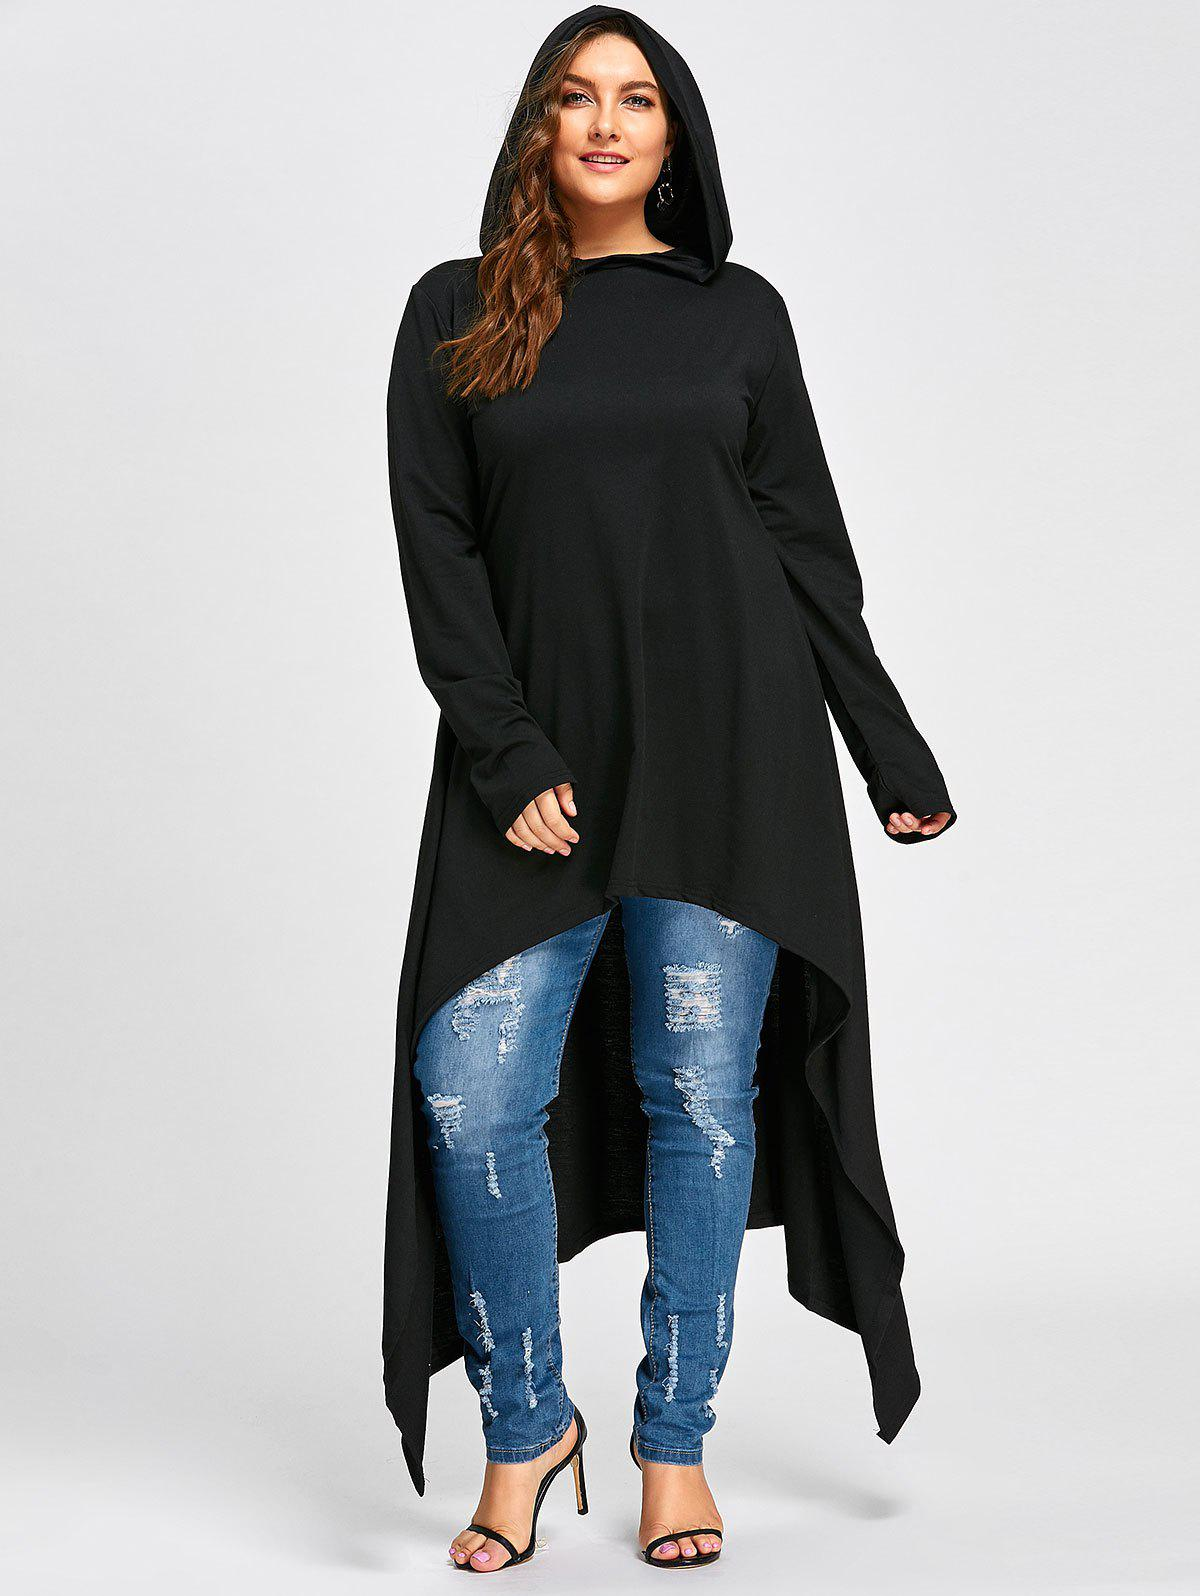 Plus Size Long High Low Hooded TopWOMEN<br><br>Size: 4XL; Color: BLACK; Material: Polyester; Shirt Length: X-Long; Sleeve Length: Full; Style: Casual; Pattern Style: Solid; Season: Fall,Winter; Weight: 0.7300kg; Package Contents: 1 x Hoodie;